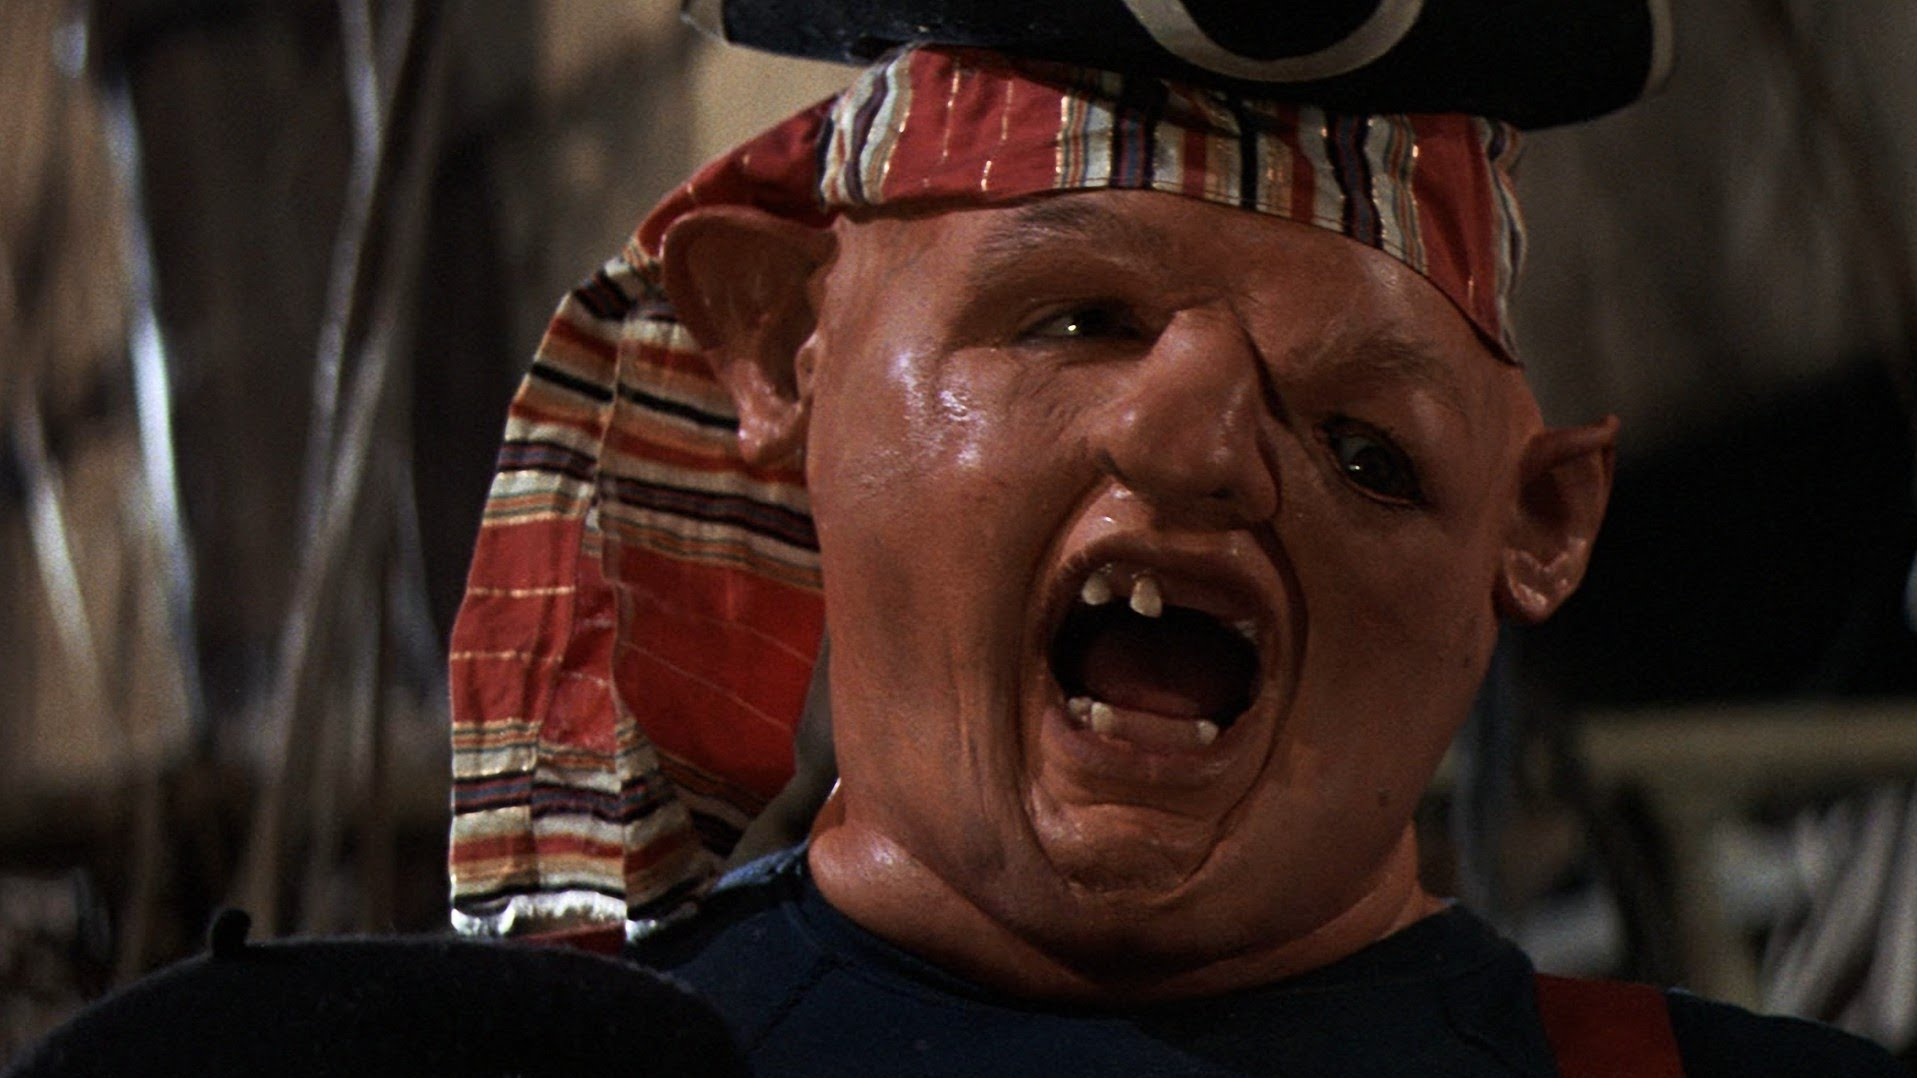 The Tragic Story Of The Guy Who Played Sloth In 'The Goonies'